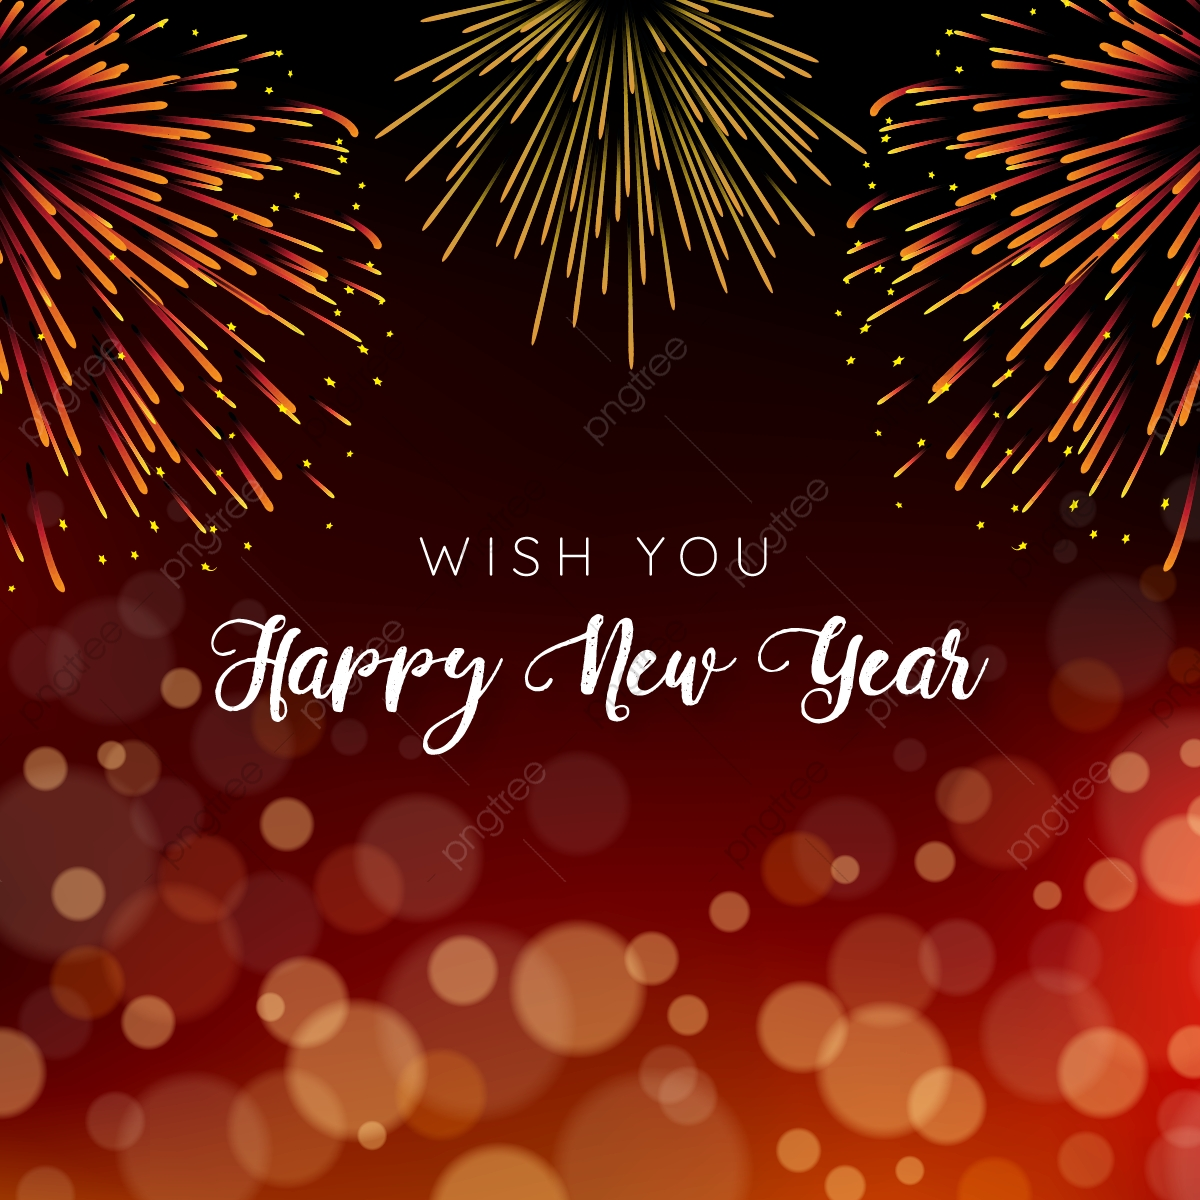 happy new year with fireworks and bokeh background abstract new year png and vector with transparent background for free download https pngtree com freepng happy new year with fireworks and bokeh background 3724971 html